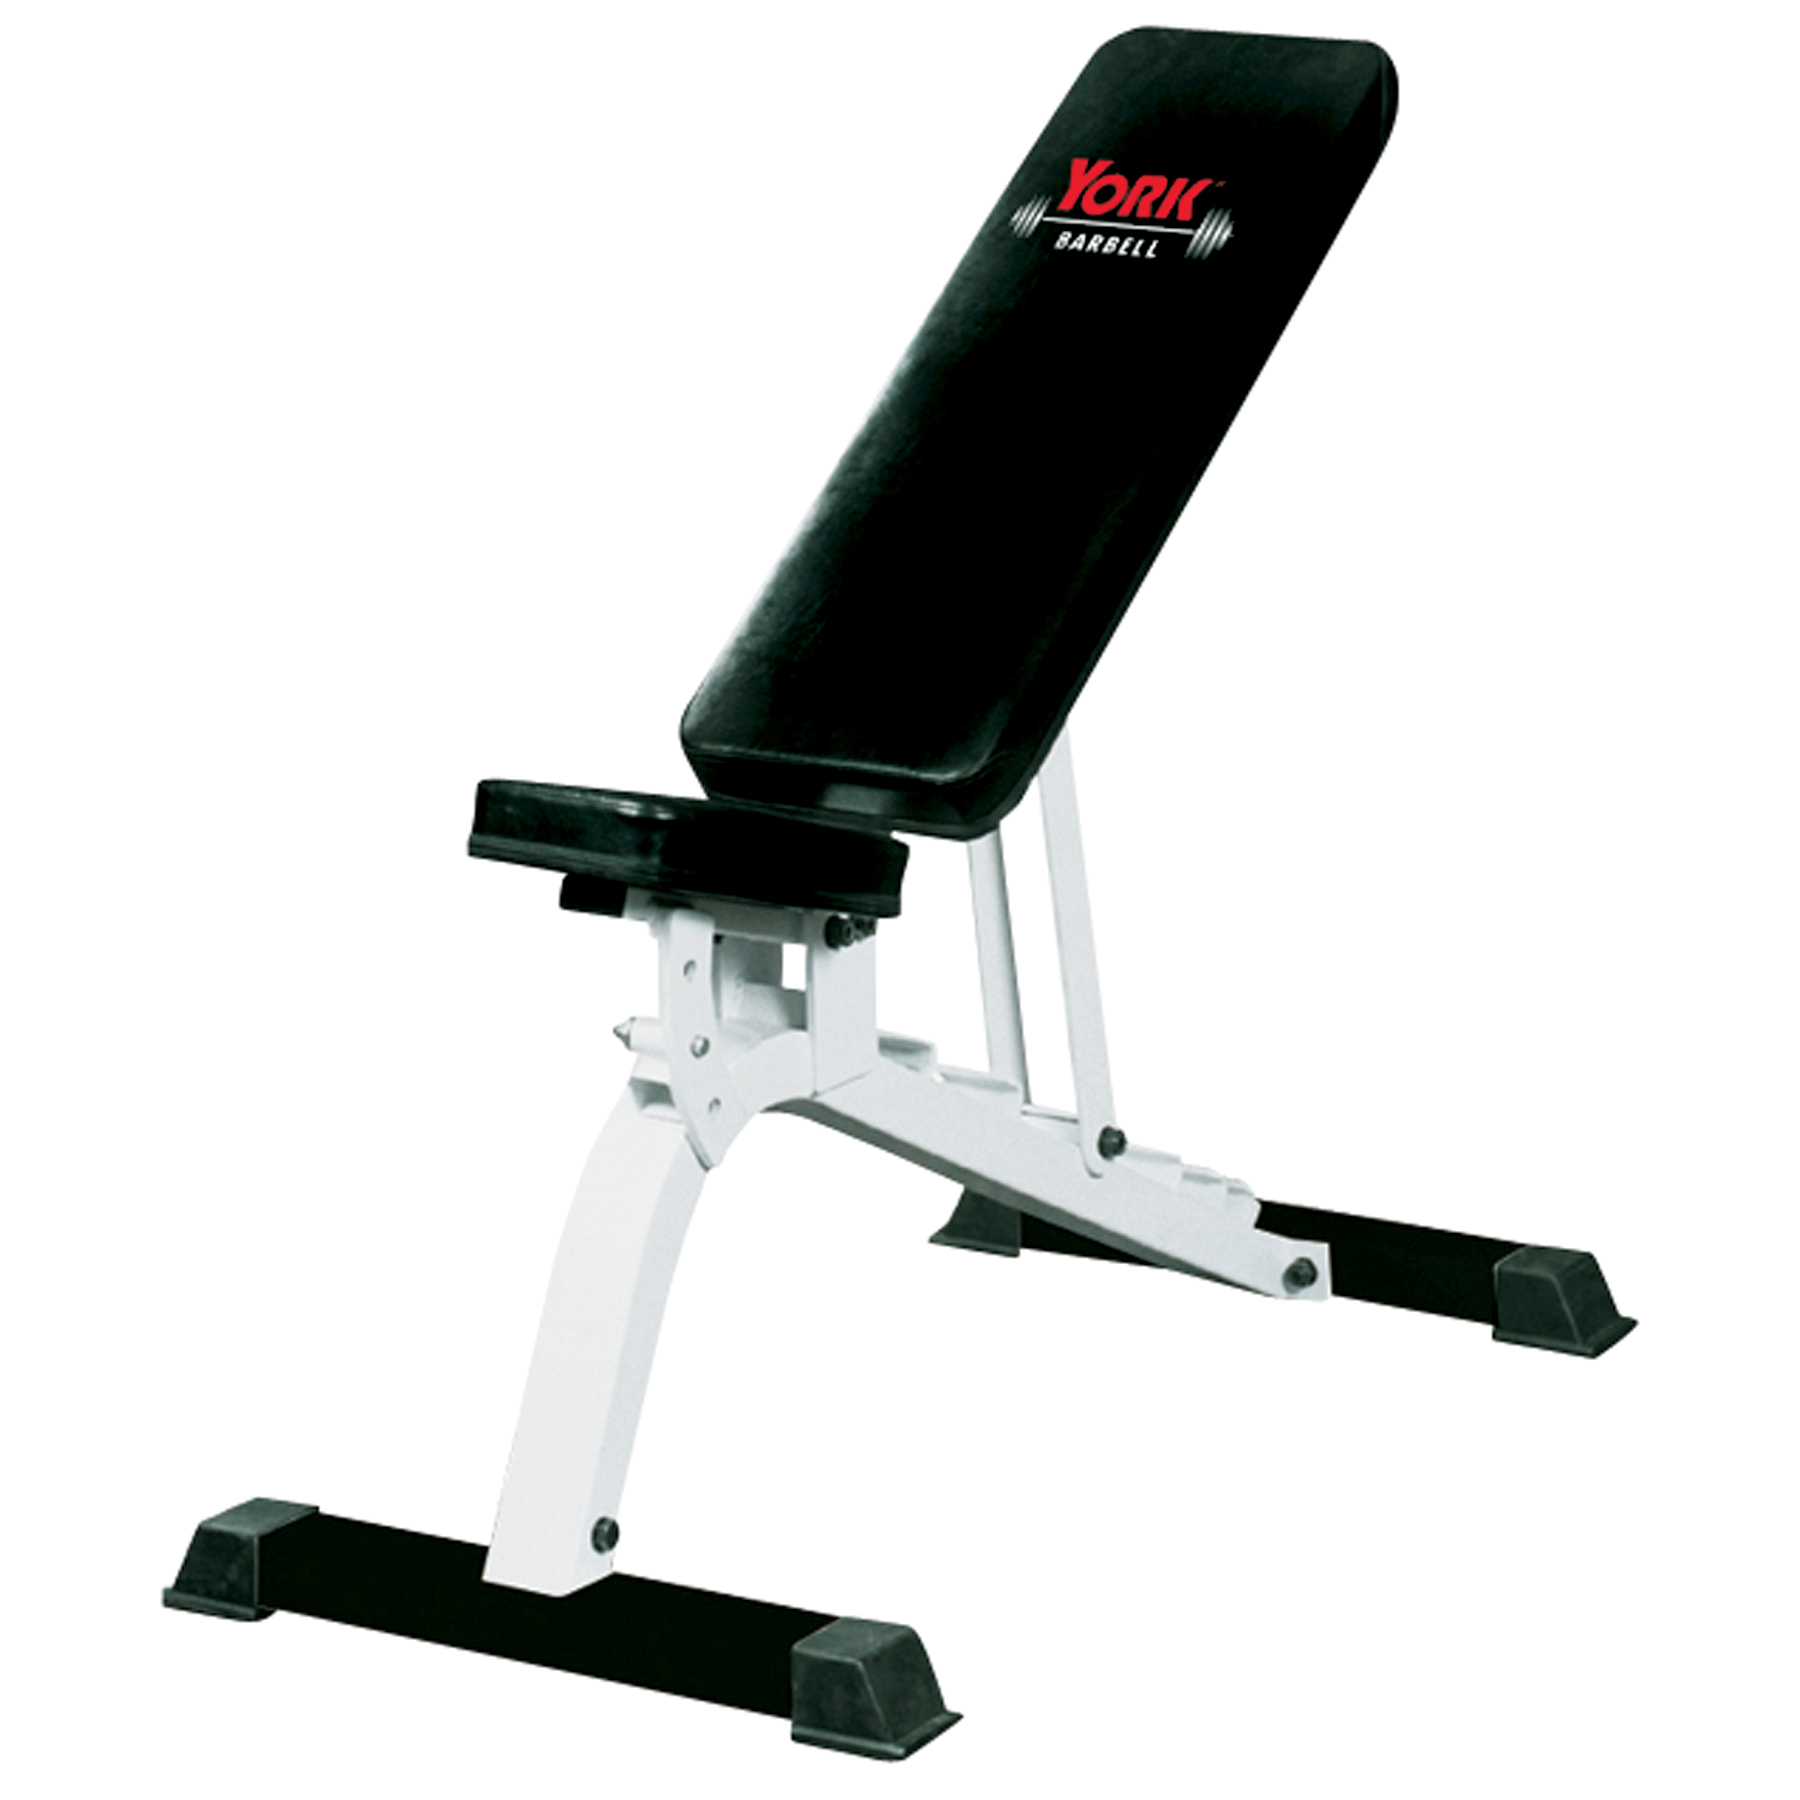 Flat To Incline Adjustable Utility Bench Press Fts Series York Barbell